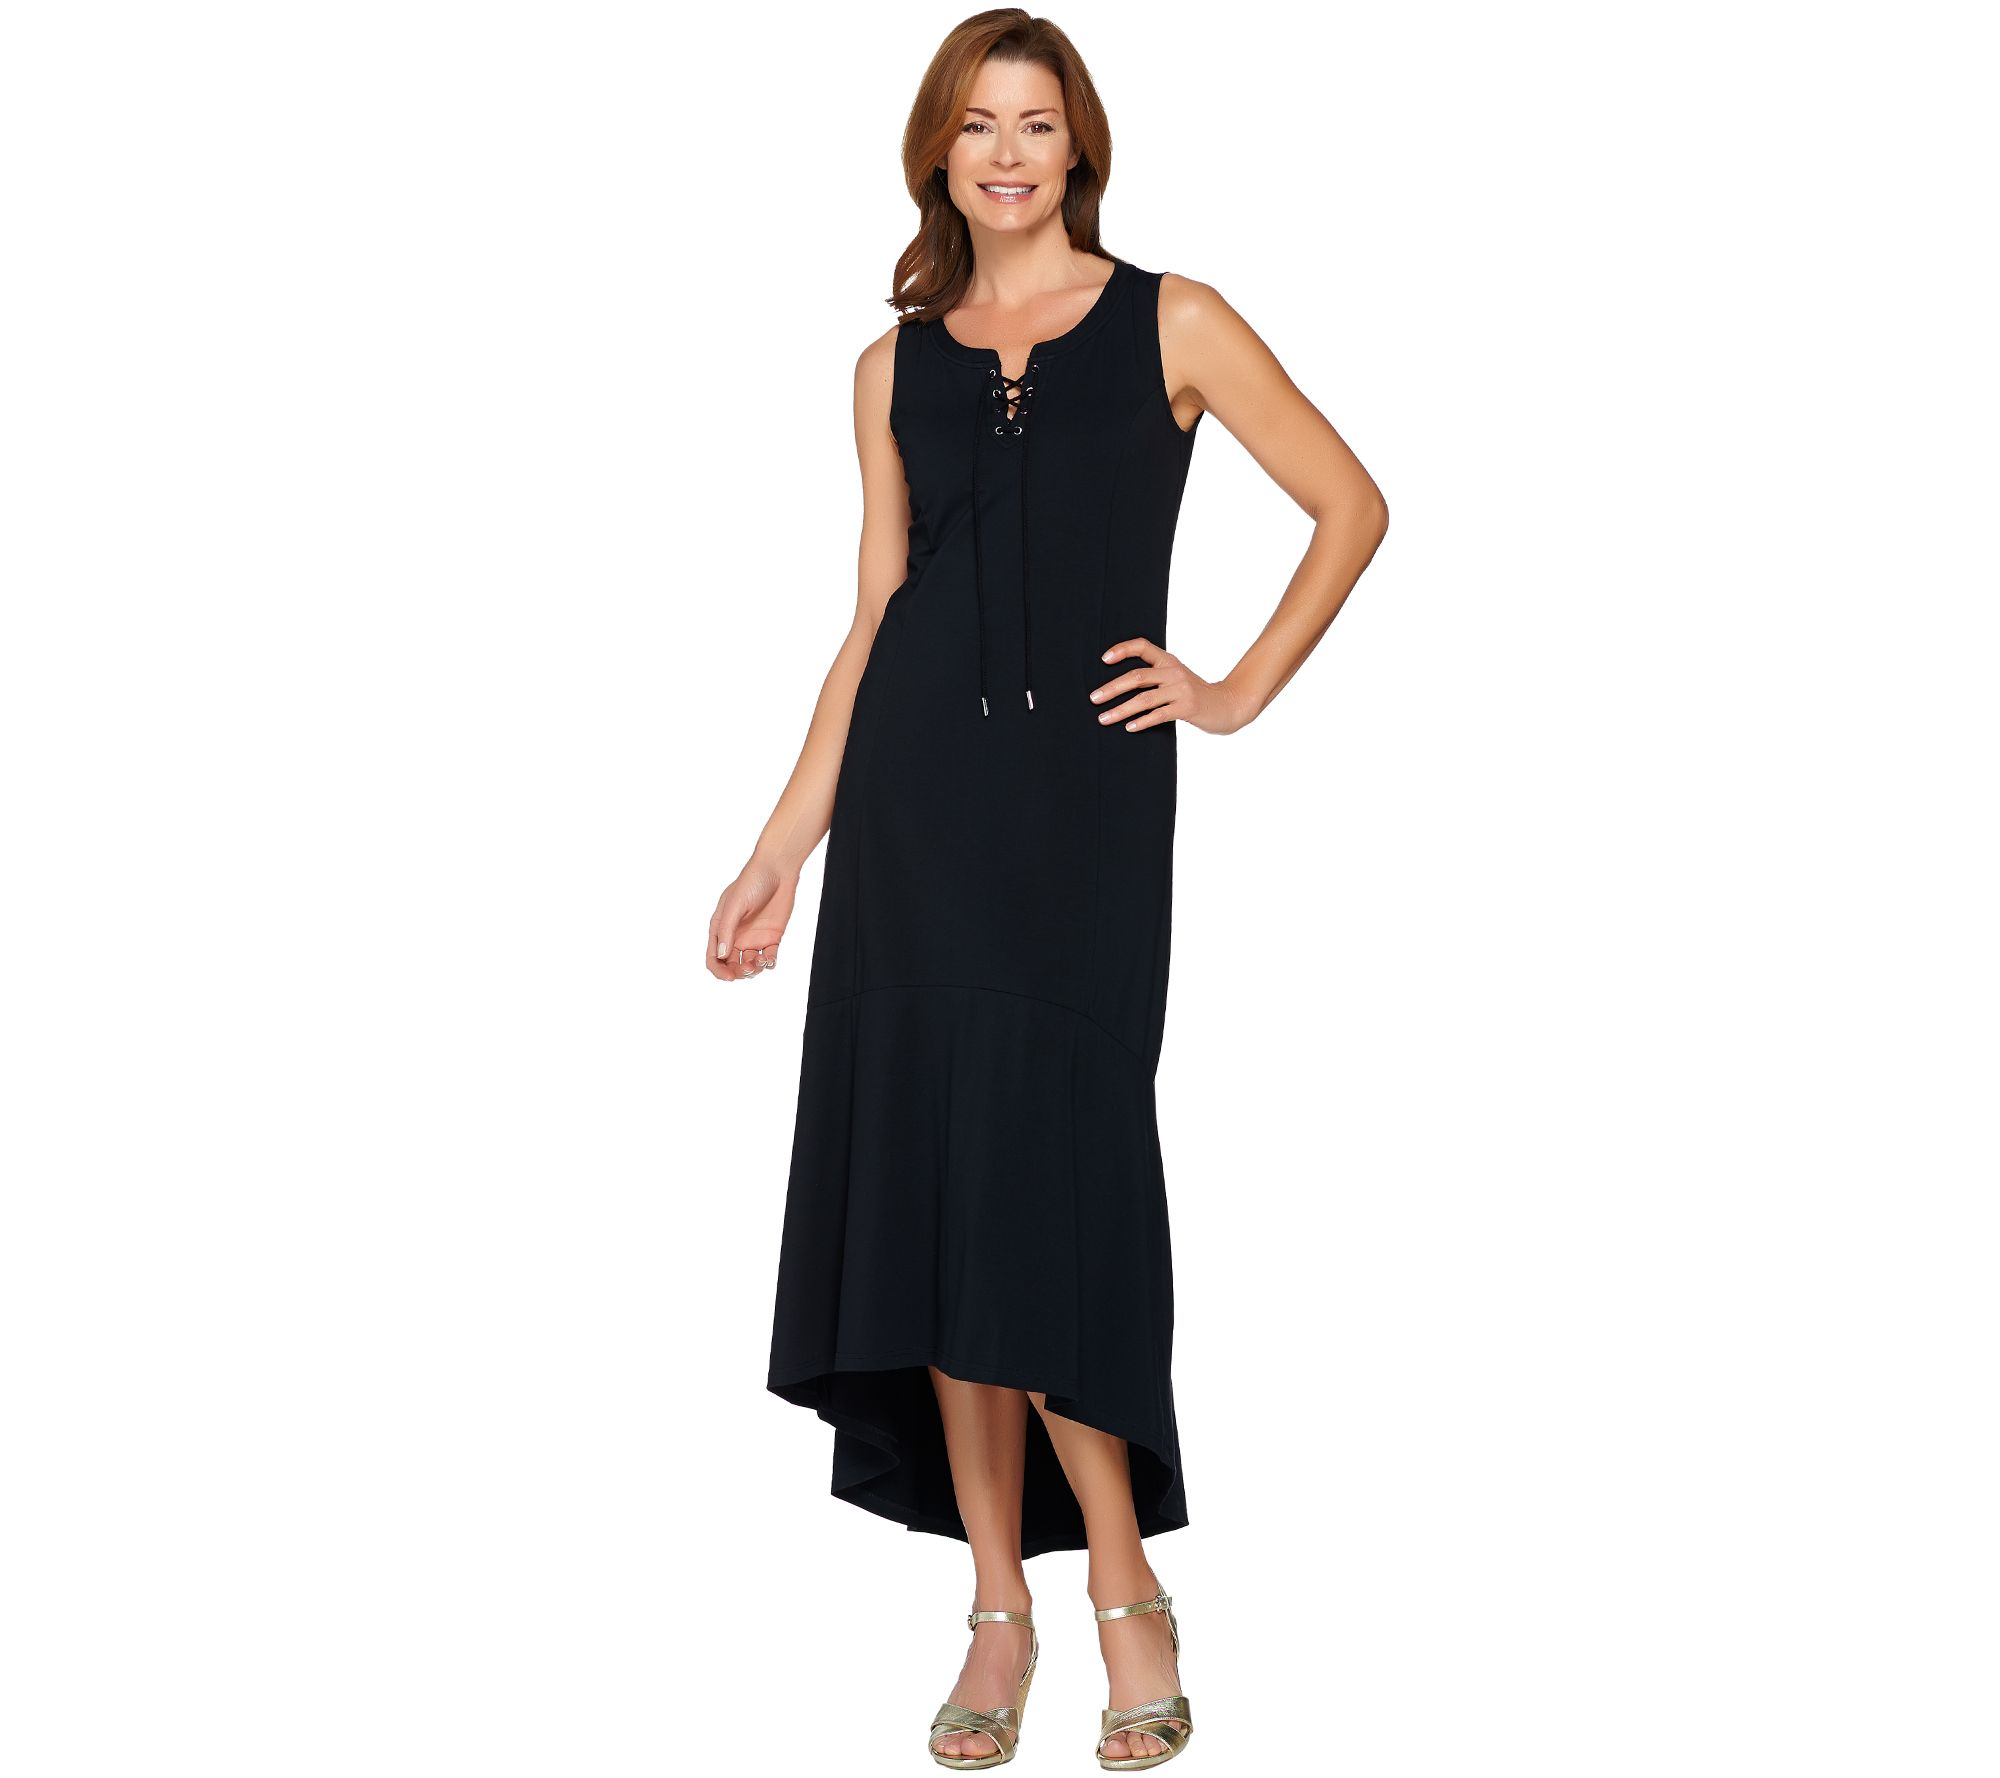 Isaac Mizrahi Lace-Up Neck Hi-low Hem Maxi Dress Black XL NEW A288664